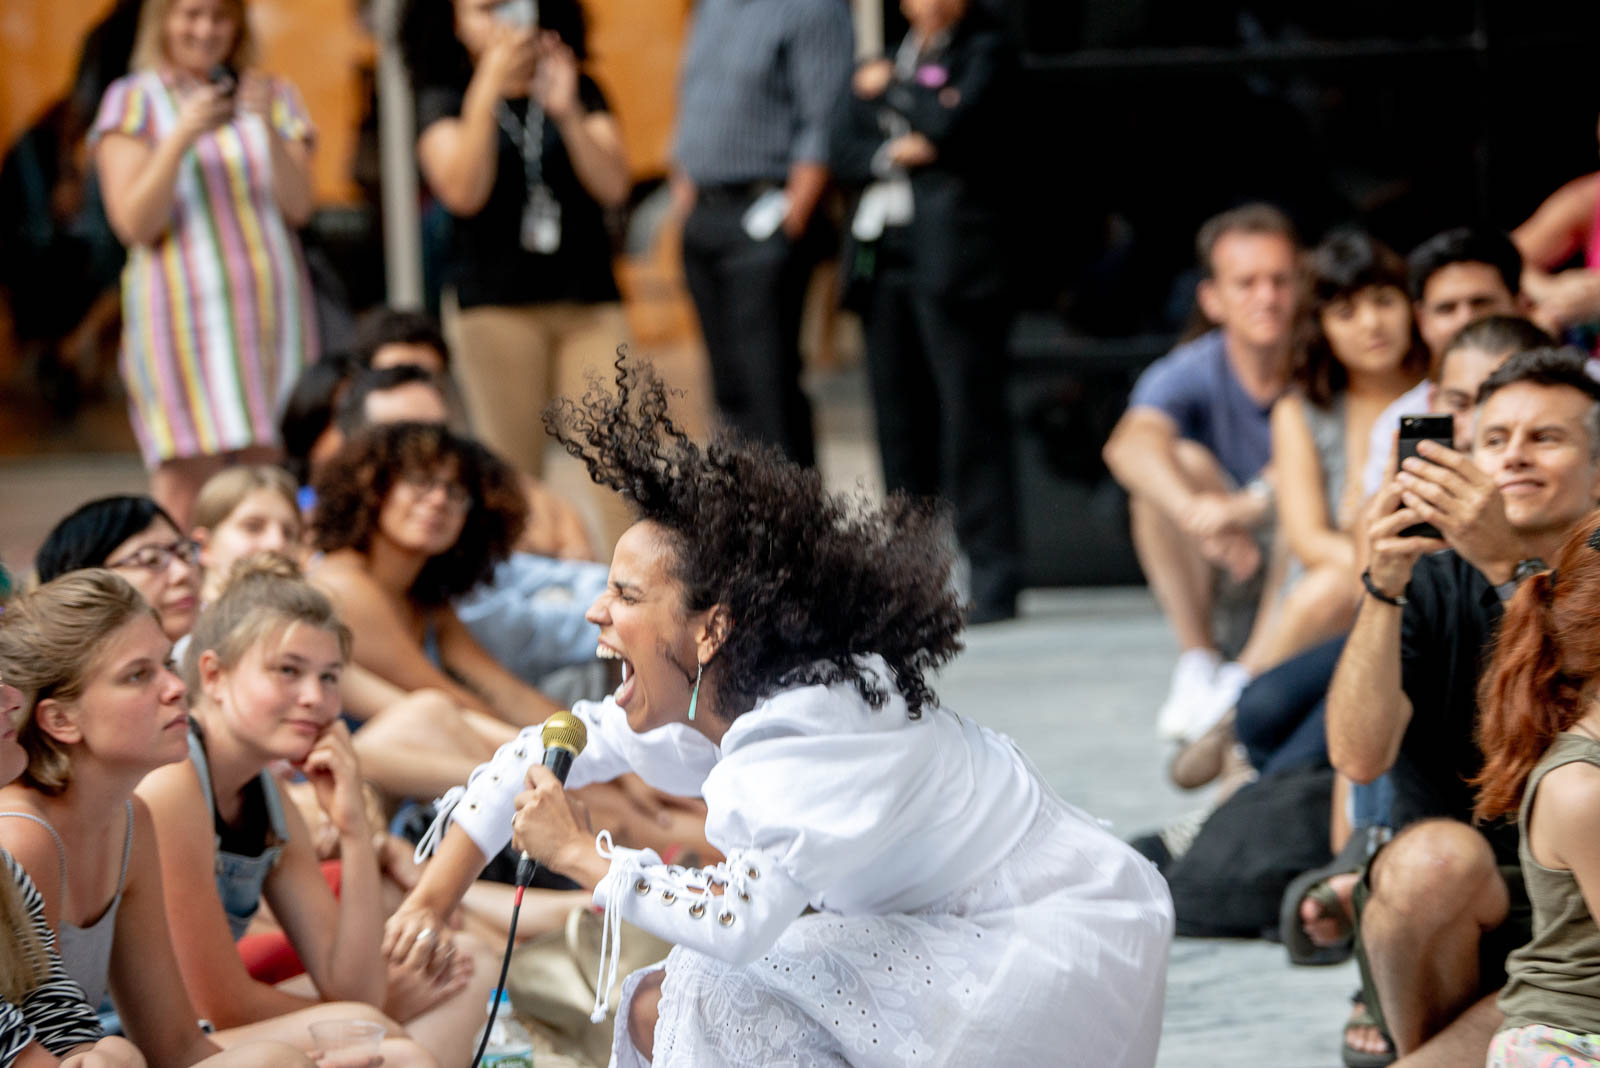 Xenia Rubinos performs in MoMA's sculpture garden on Thursday, August 8, 2018.